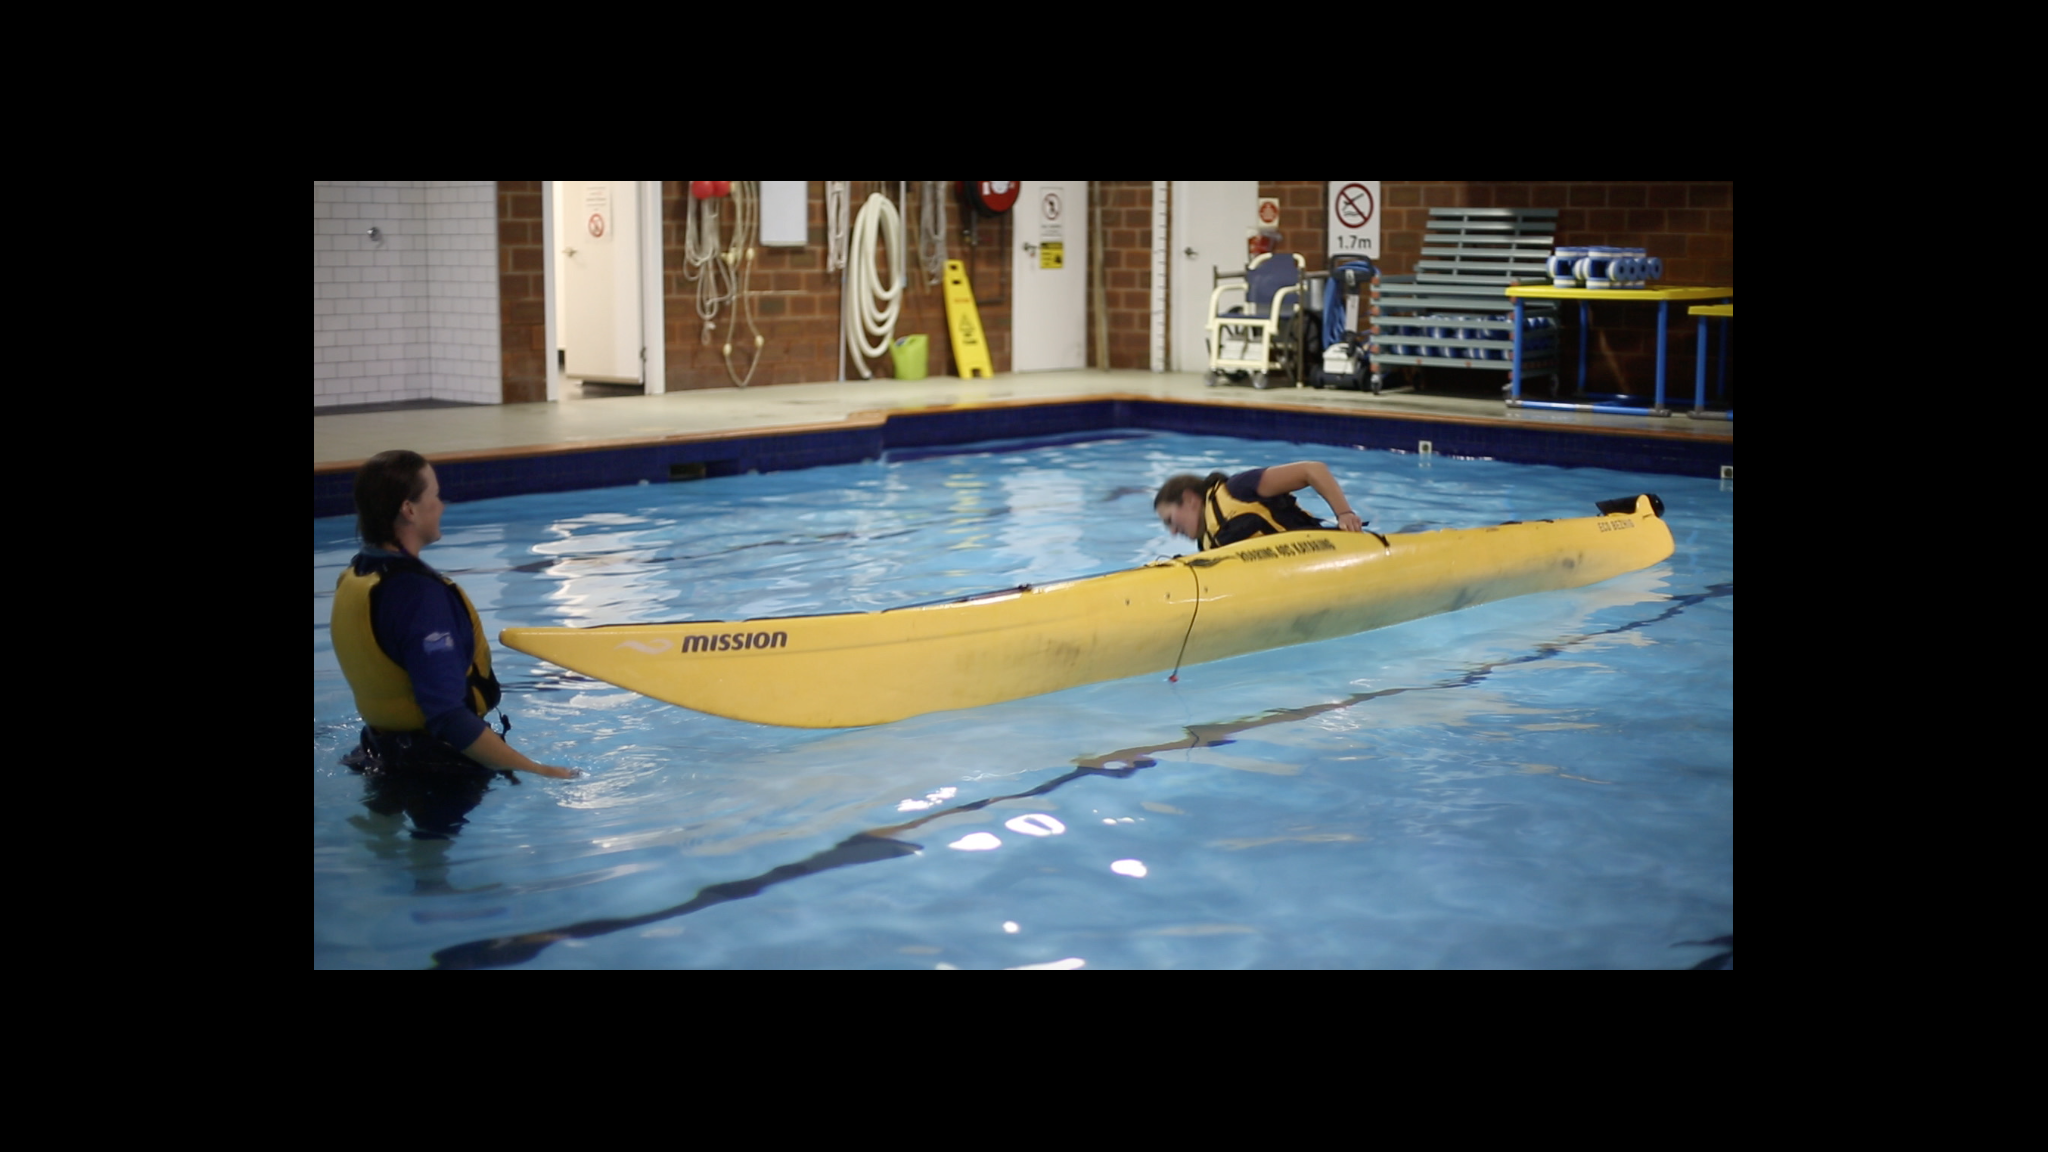 Roaring 40s Kayaking - Capsizing kayak in safety of pool Hobart Tasmania